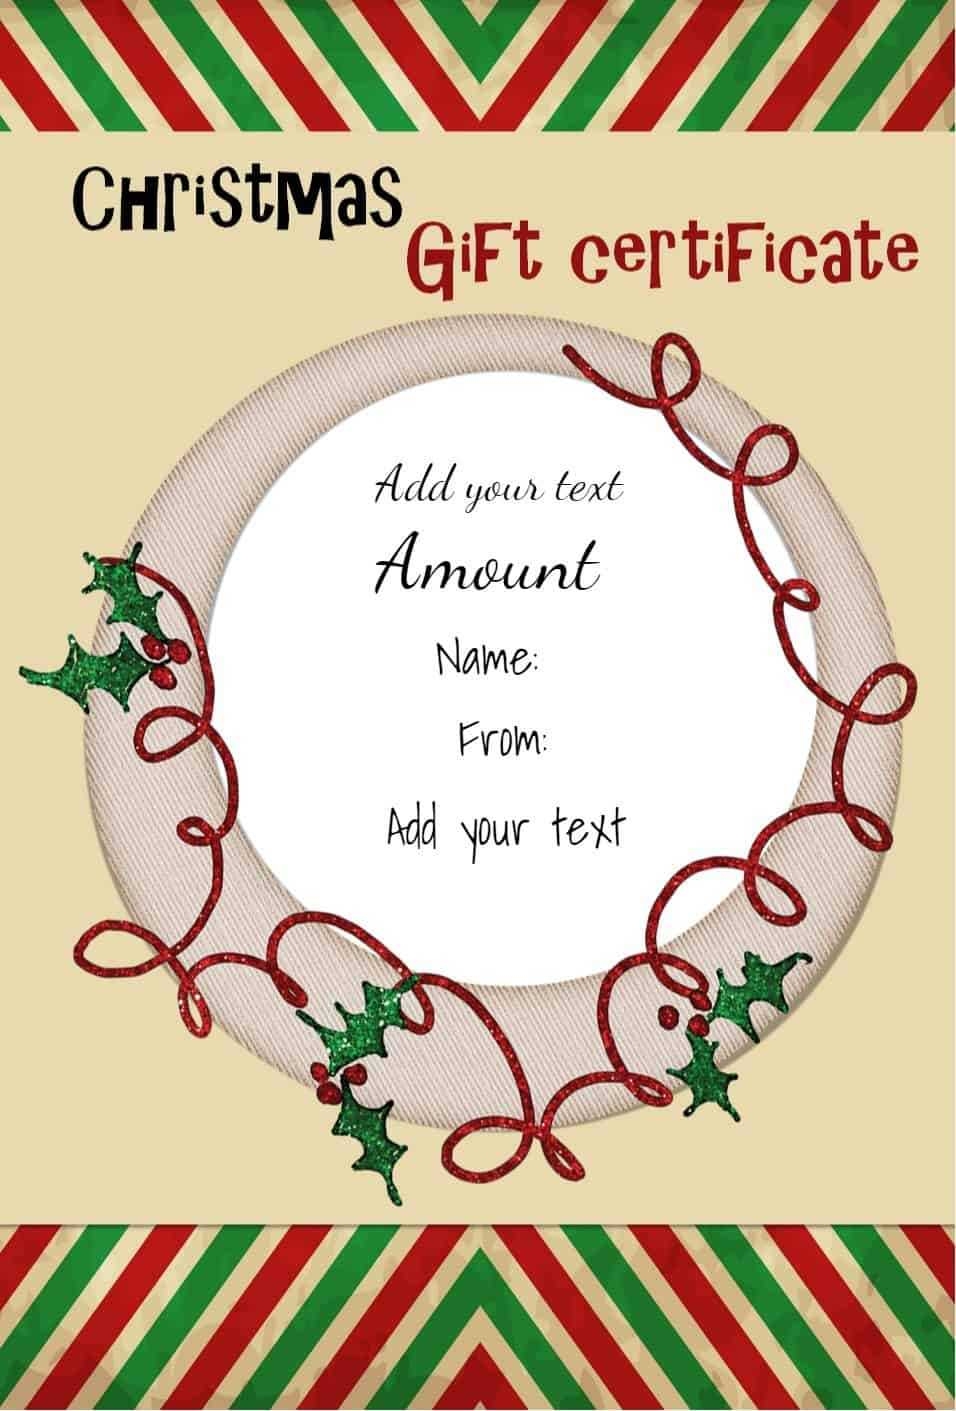 Free Christmas Gift Certificate Template | Customize Online Regarding Christmas Gift Certificate Template Free Download